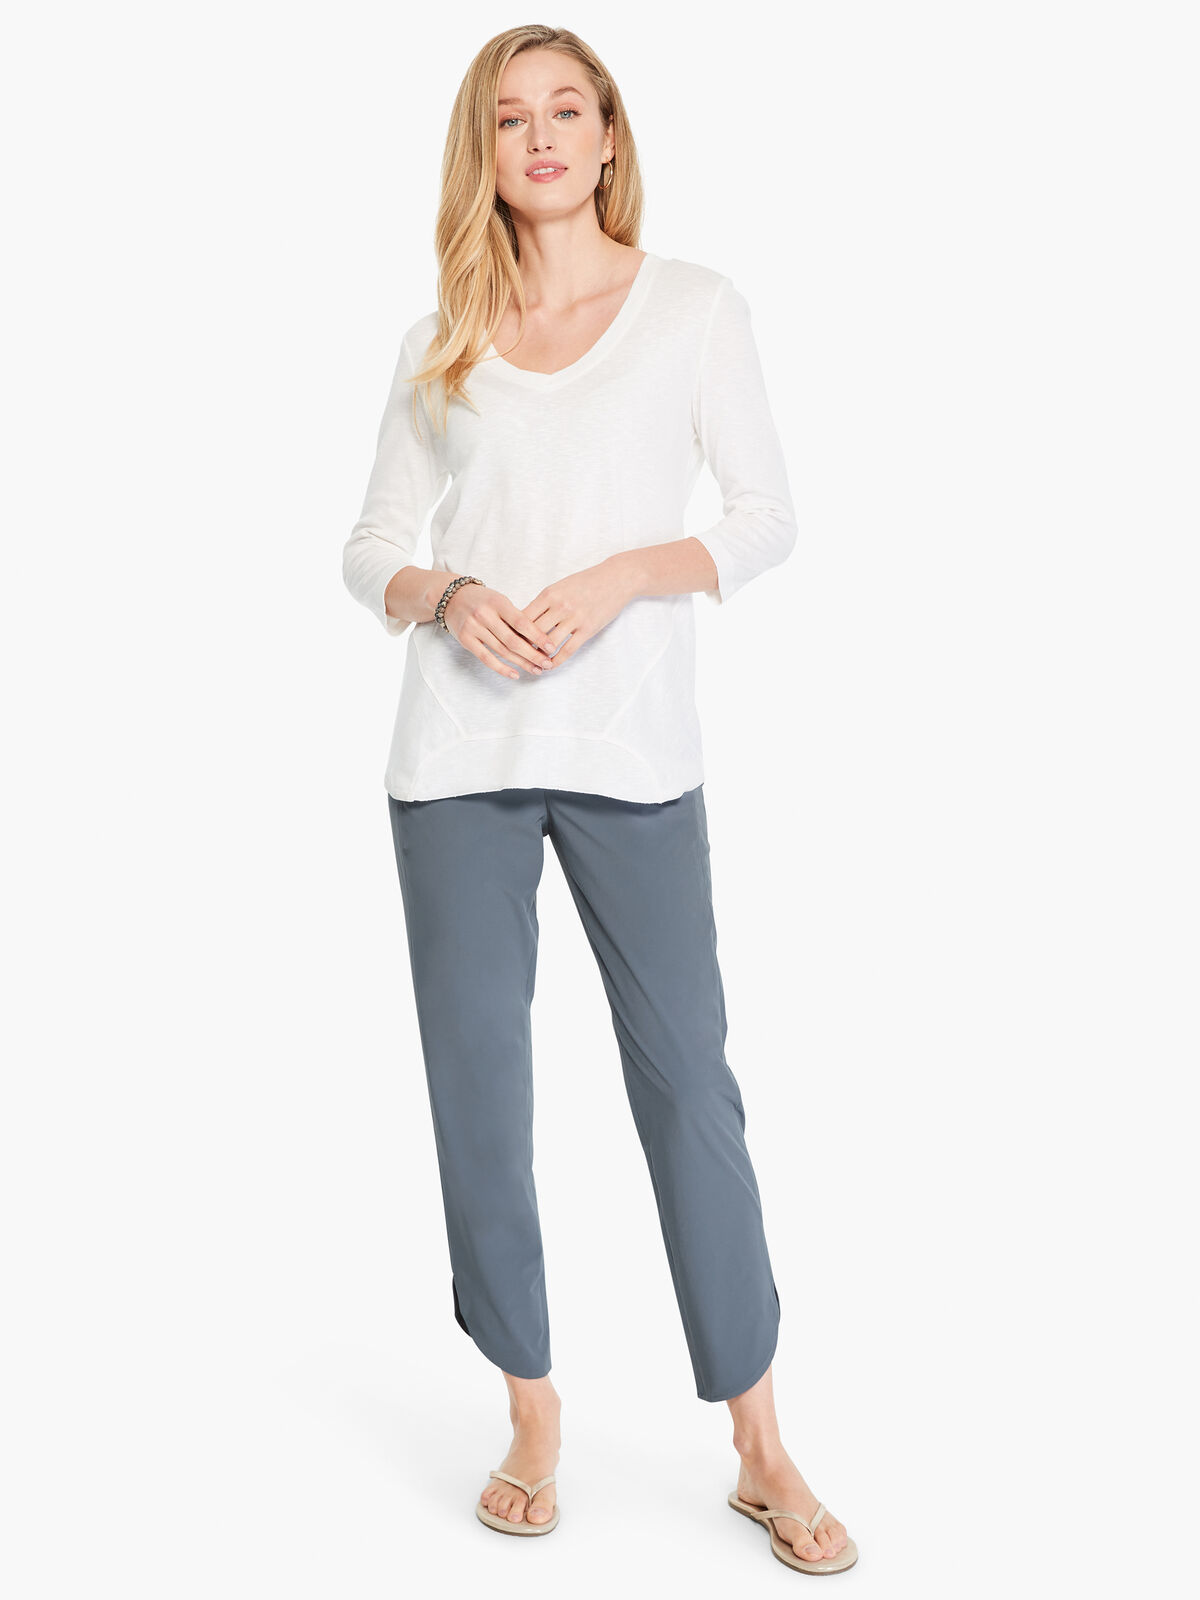 Shirt Tail Tech Stretch Pant